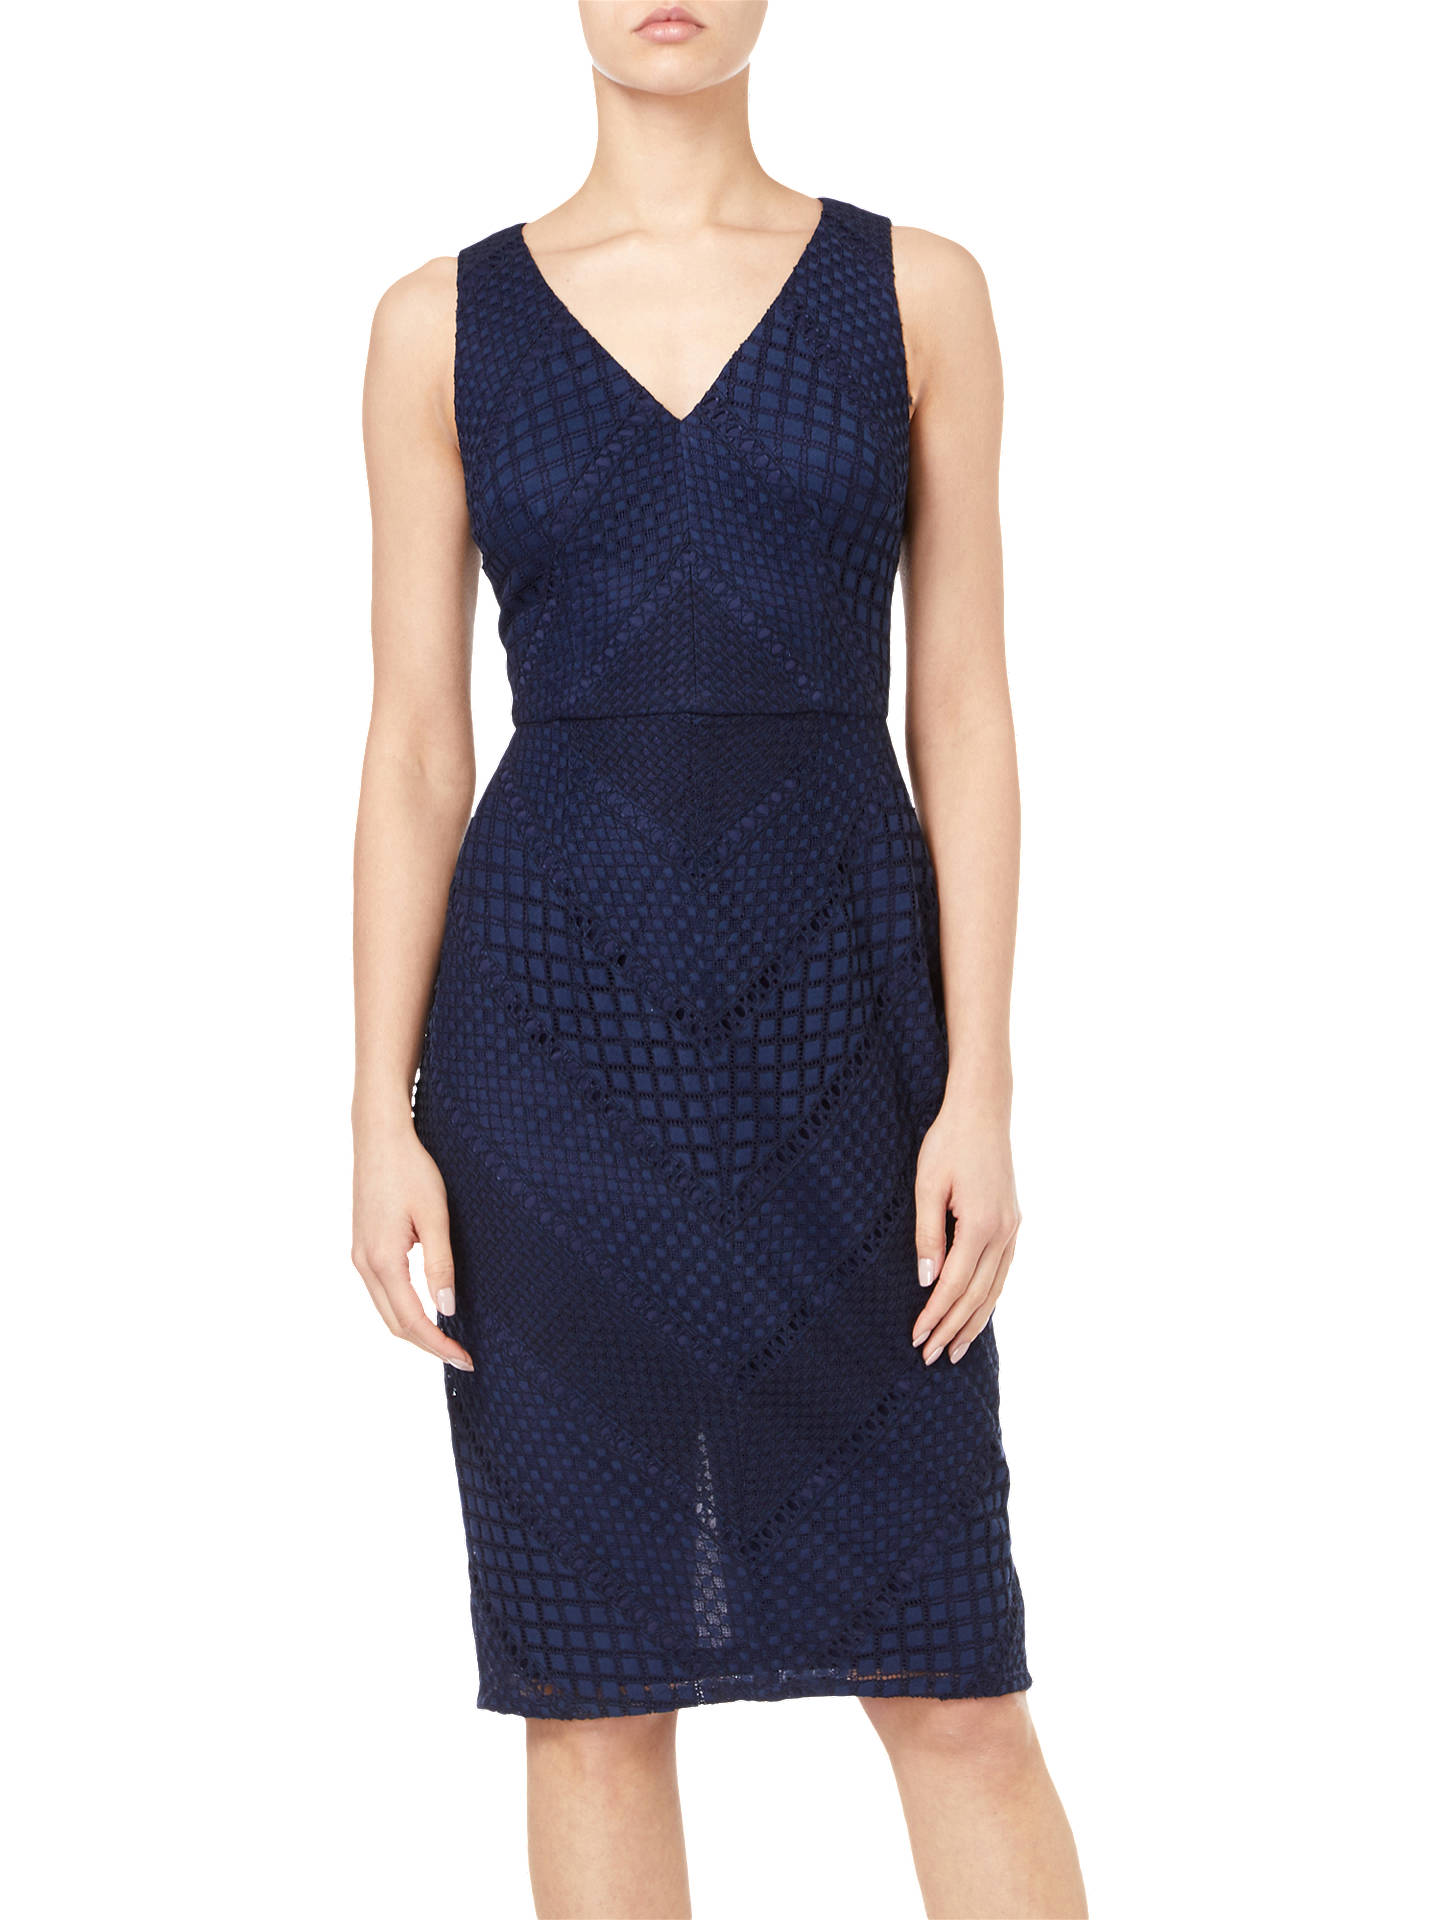 Buy Adrianna Papell Vintage Lace Dress, Navy/Black, 12 Online at johnlewis.com